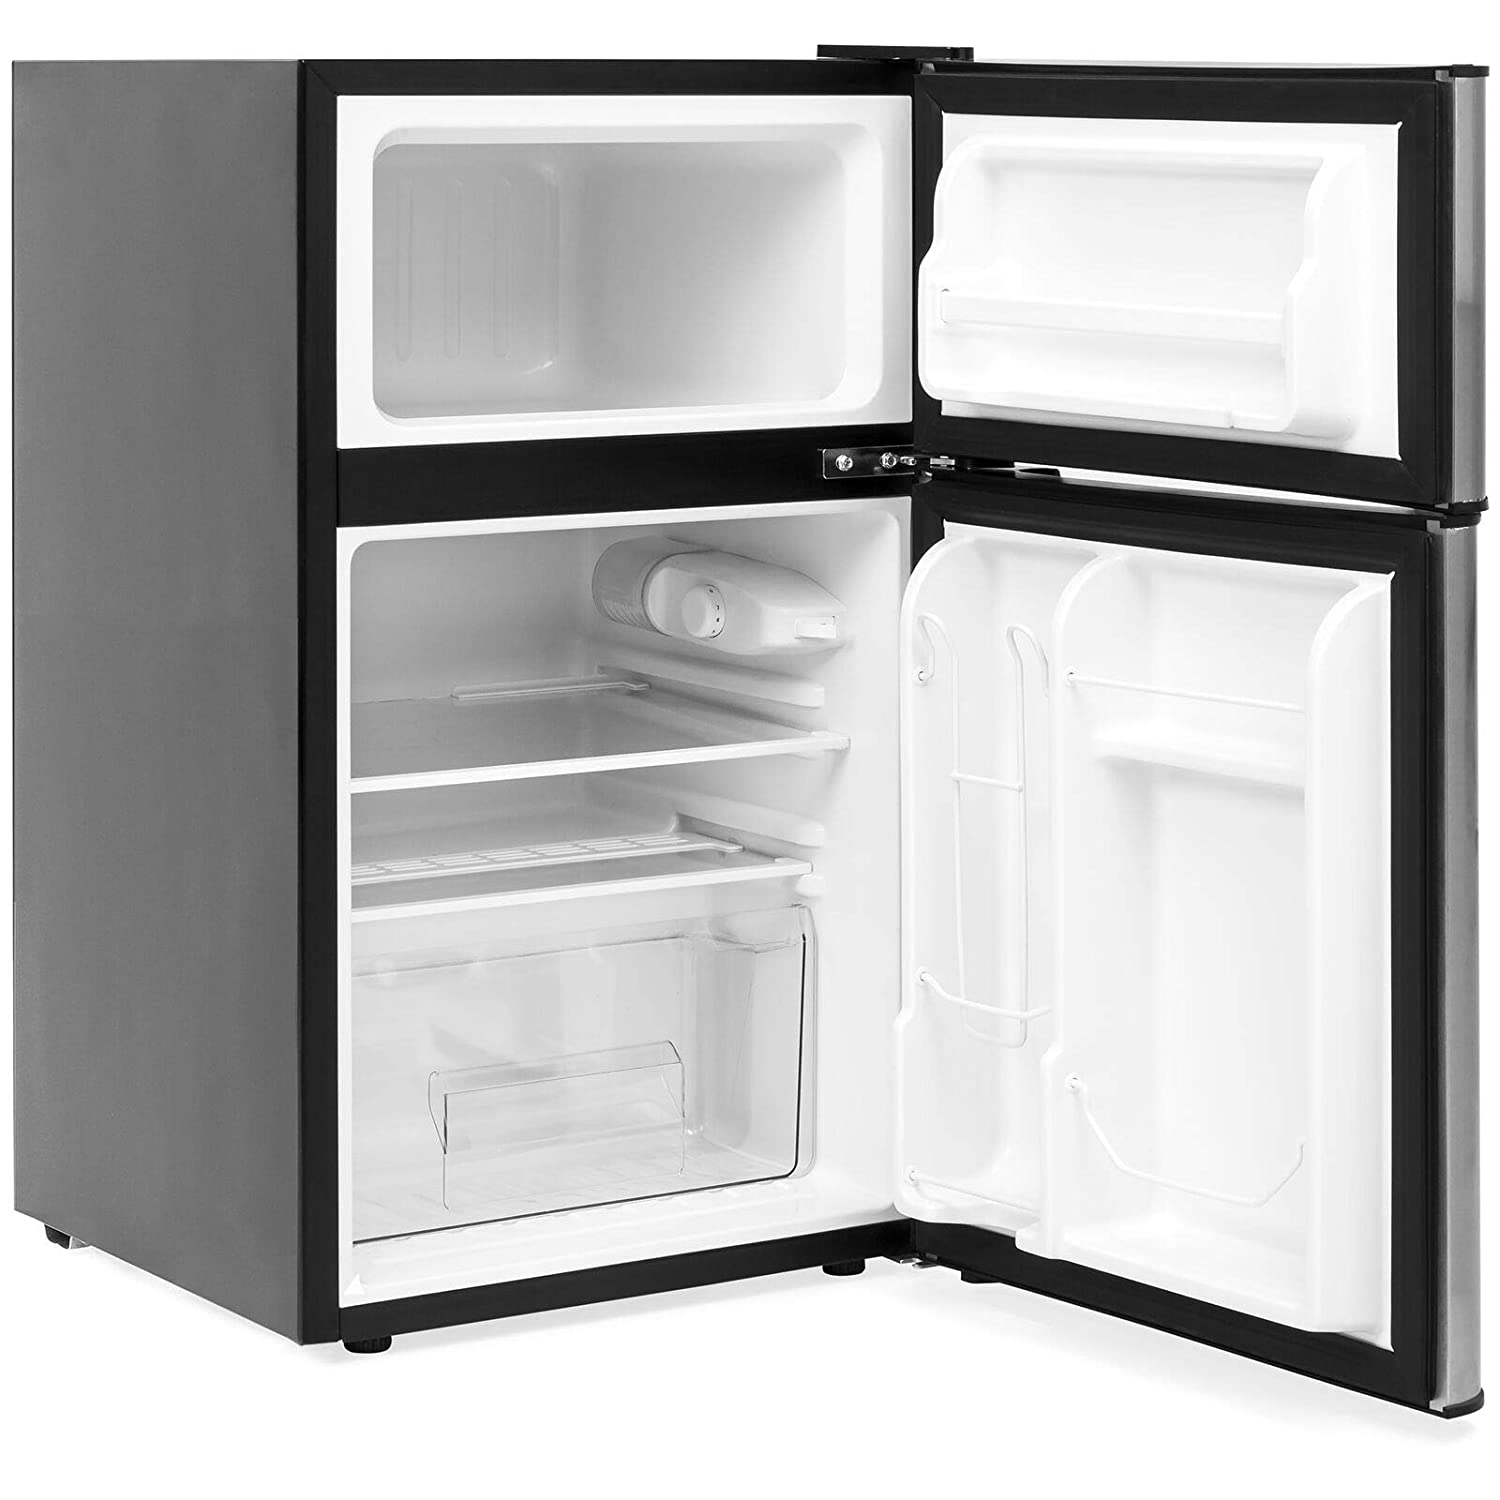 Compact Keep Cool Material Stainless Size Small Temperature 2 doors Adjustable Suitable Safe Food Vegetable Fruit Beverage Total Ice Tray Mini Refrigerator For Office Dorm Garage Bedroom Living Room